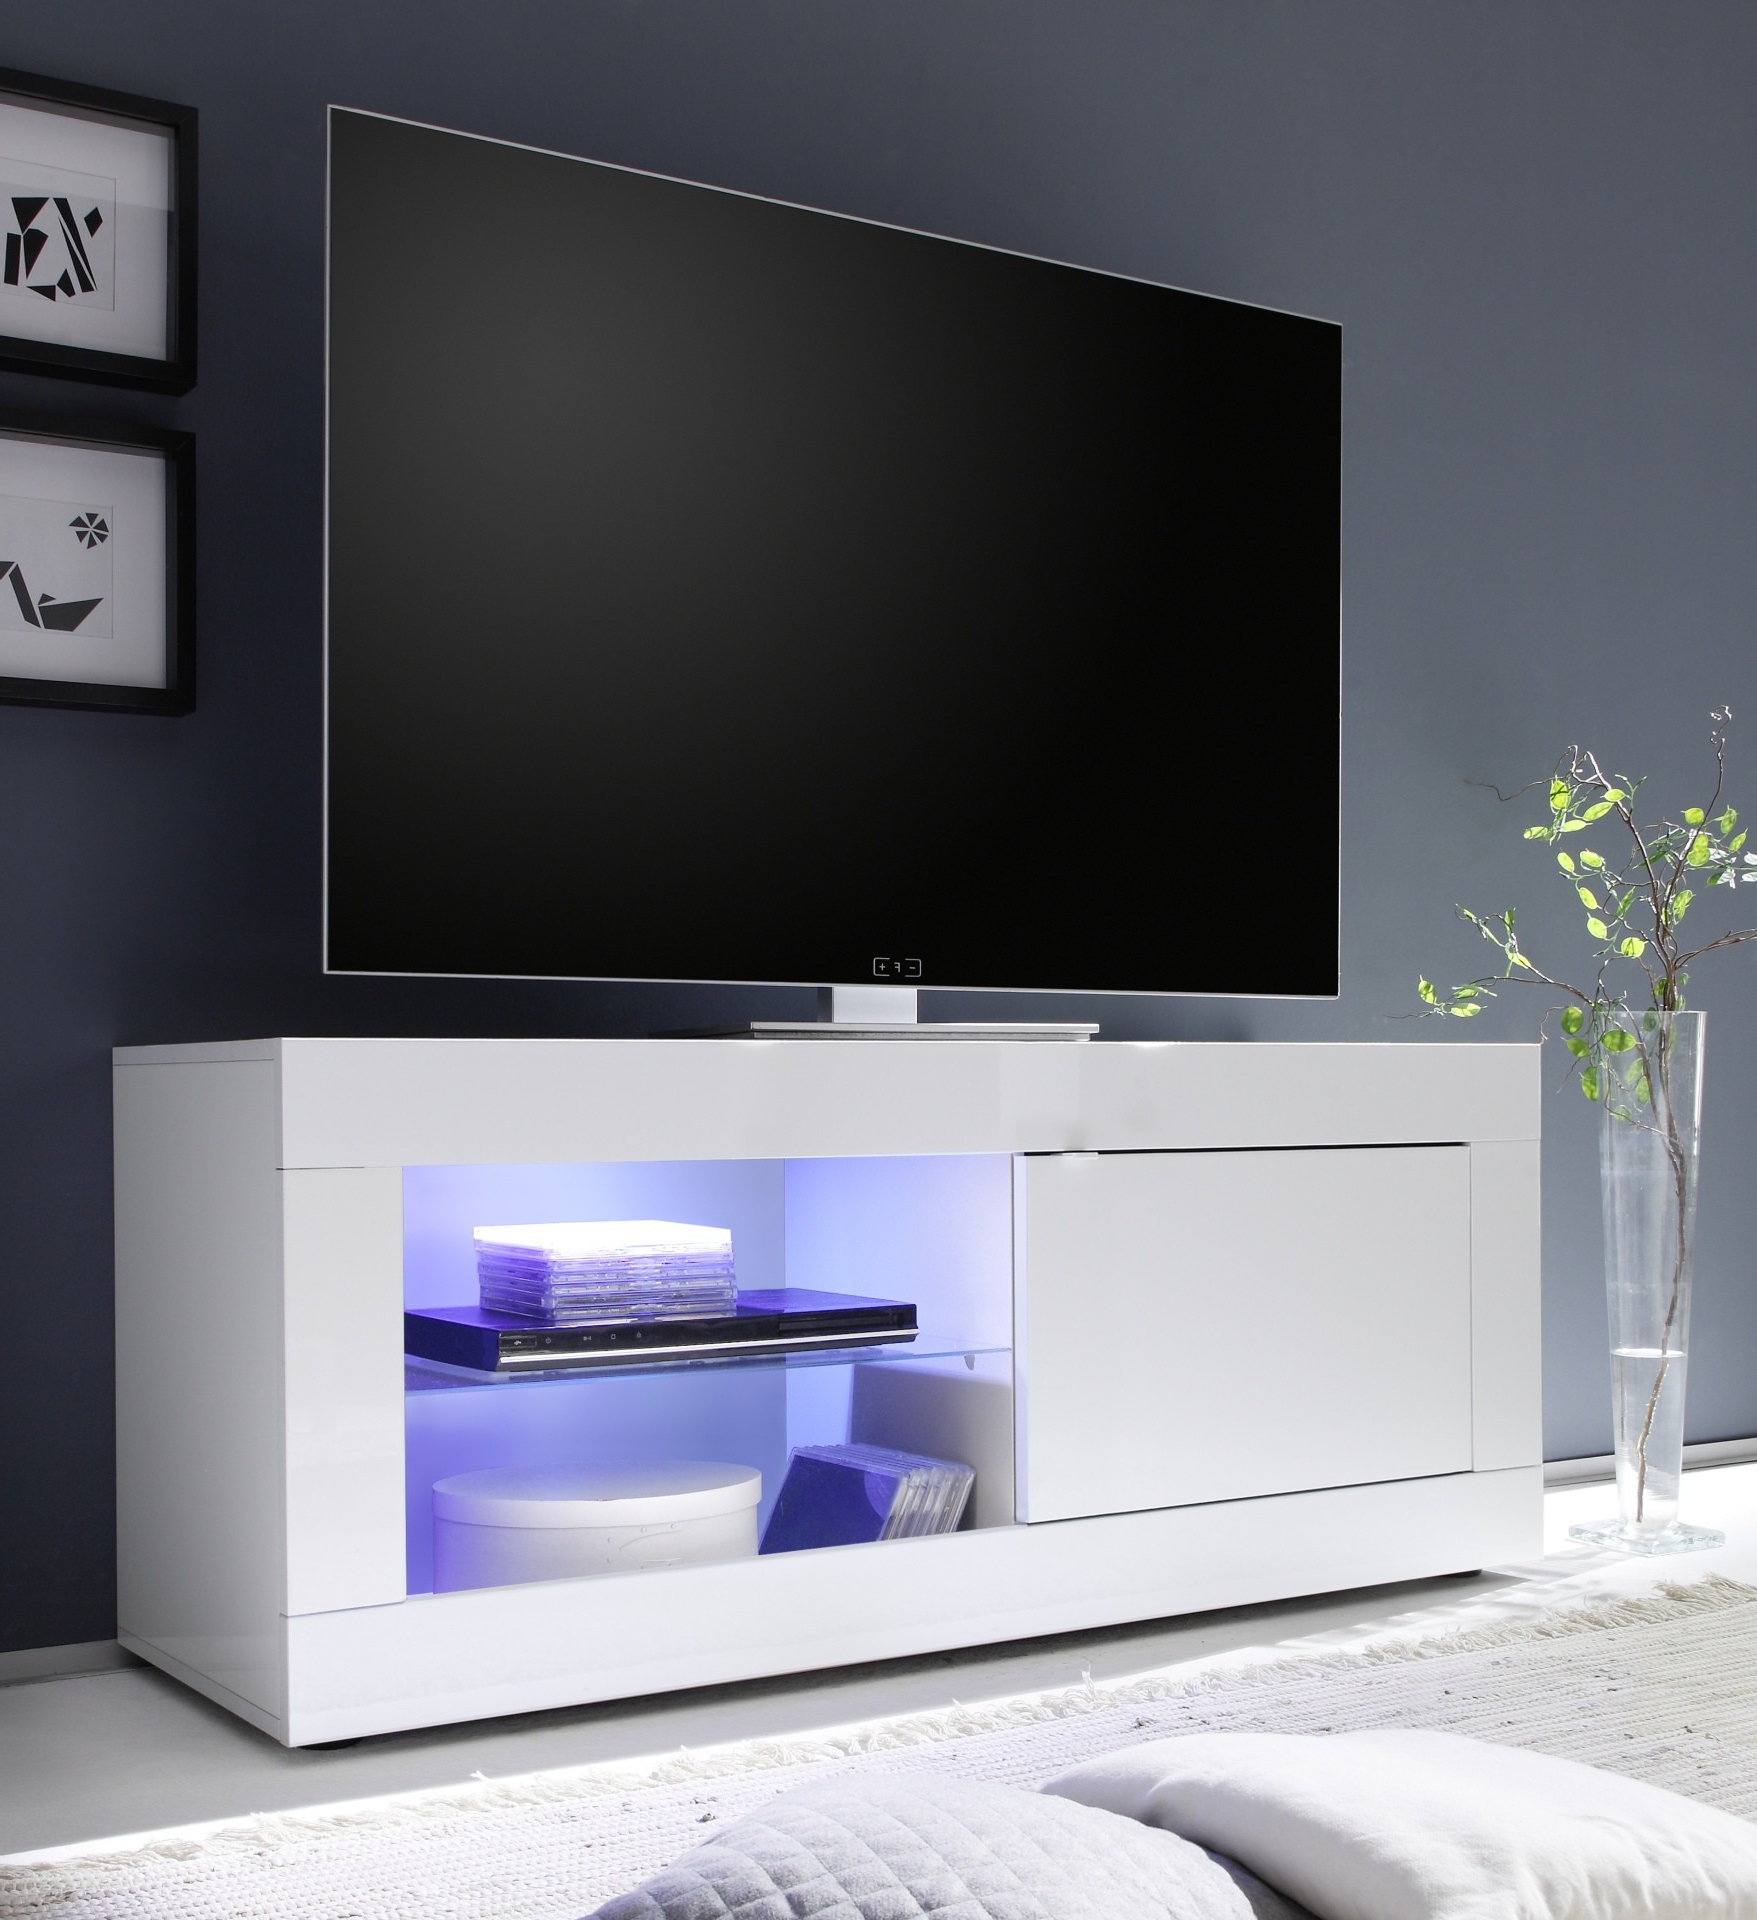 Newest Dolcevita Gloss Tv Stand – Tv Stands (1235) – Sena Home Furniture Regarding Gloss White Tv Stands (View 15 of 20)